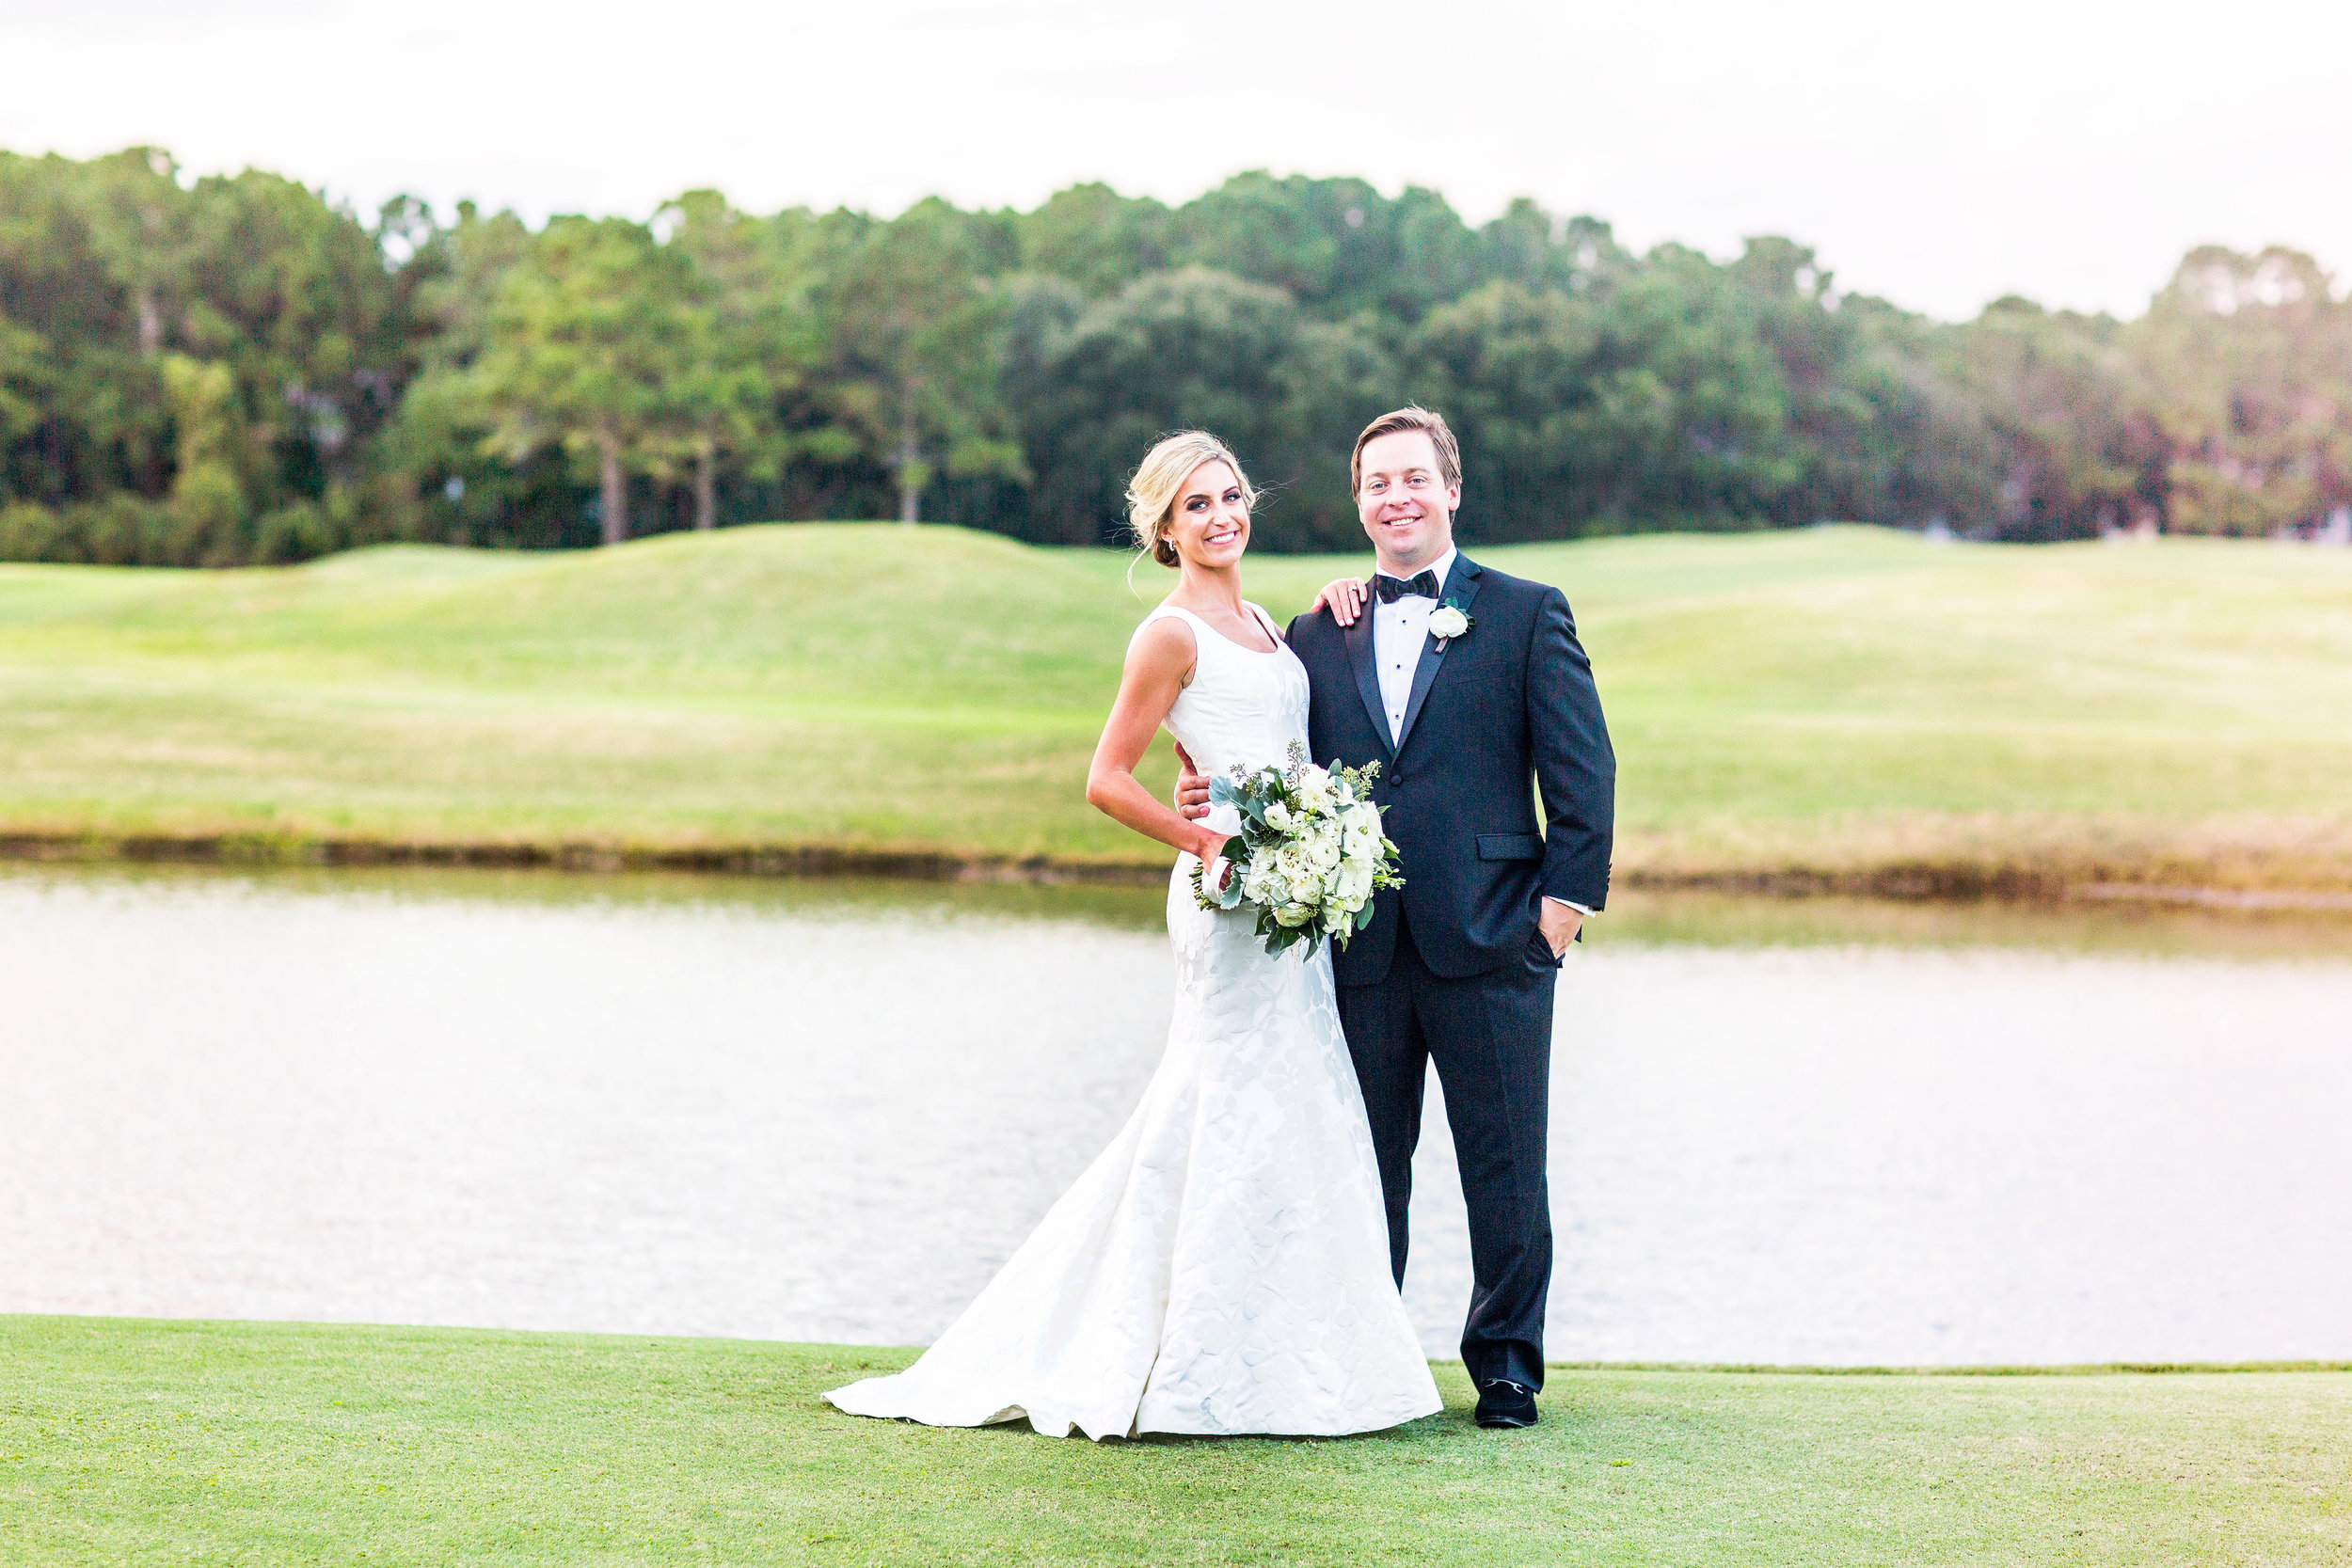 Alli & William's DeBordieu Club wedding in Georgetown, SC  //  A Lowcountry Wedding Magazine & Blog